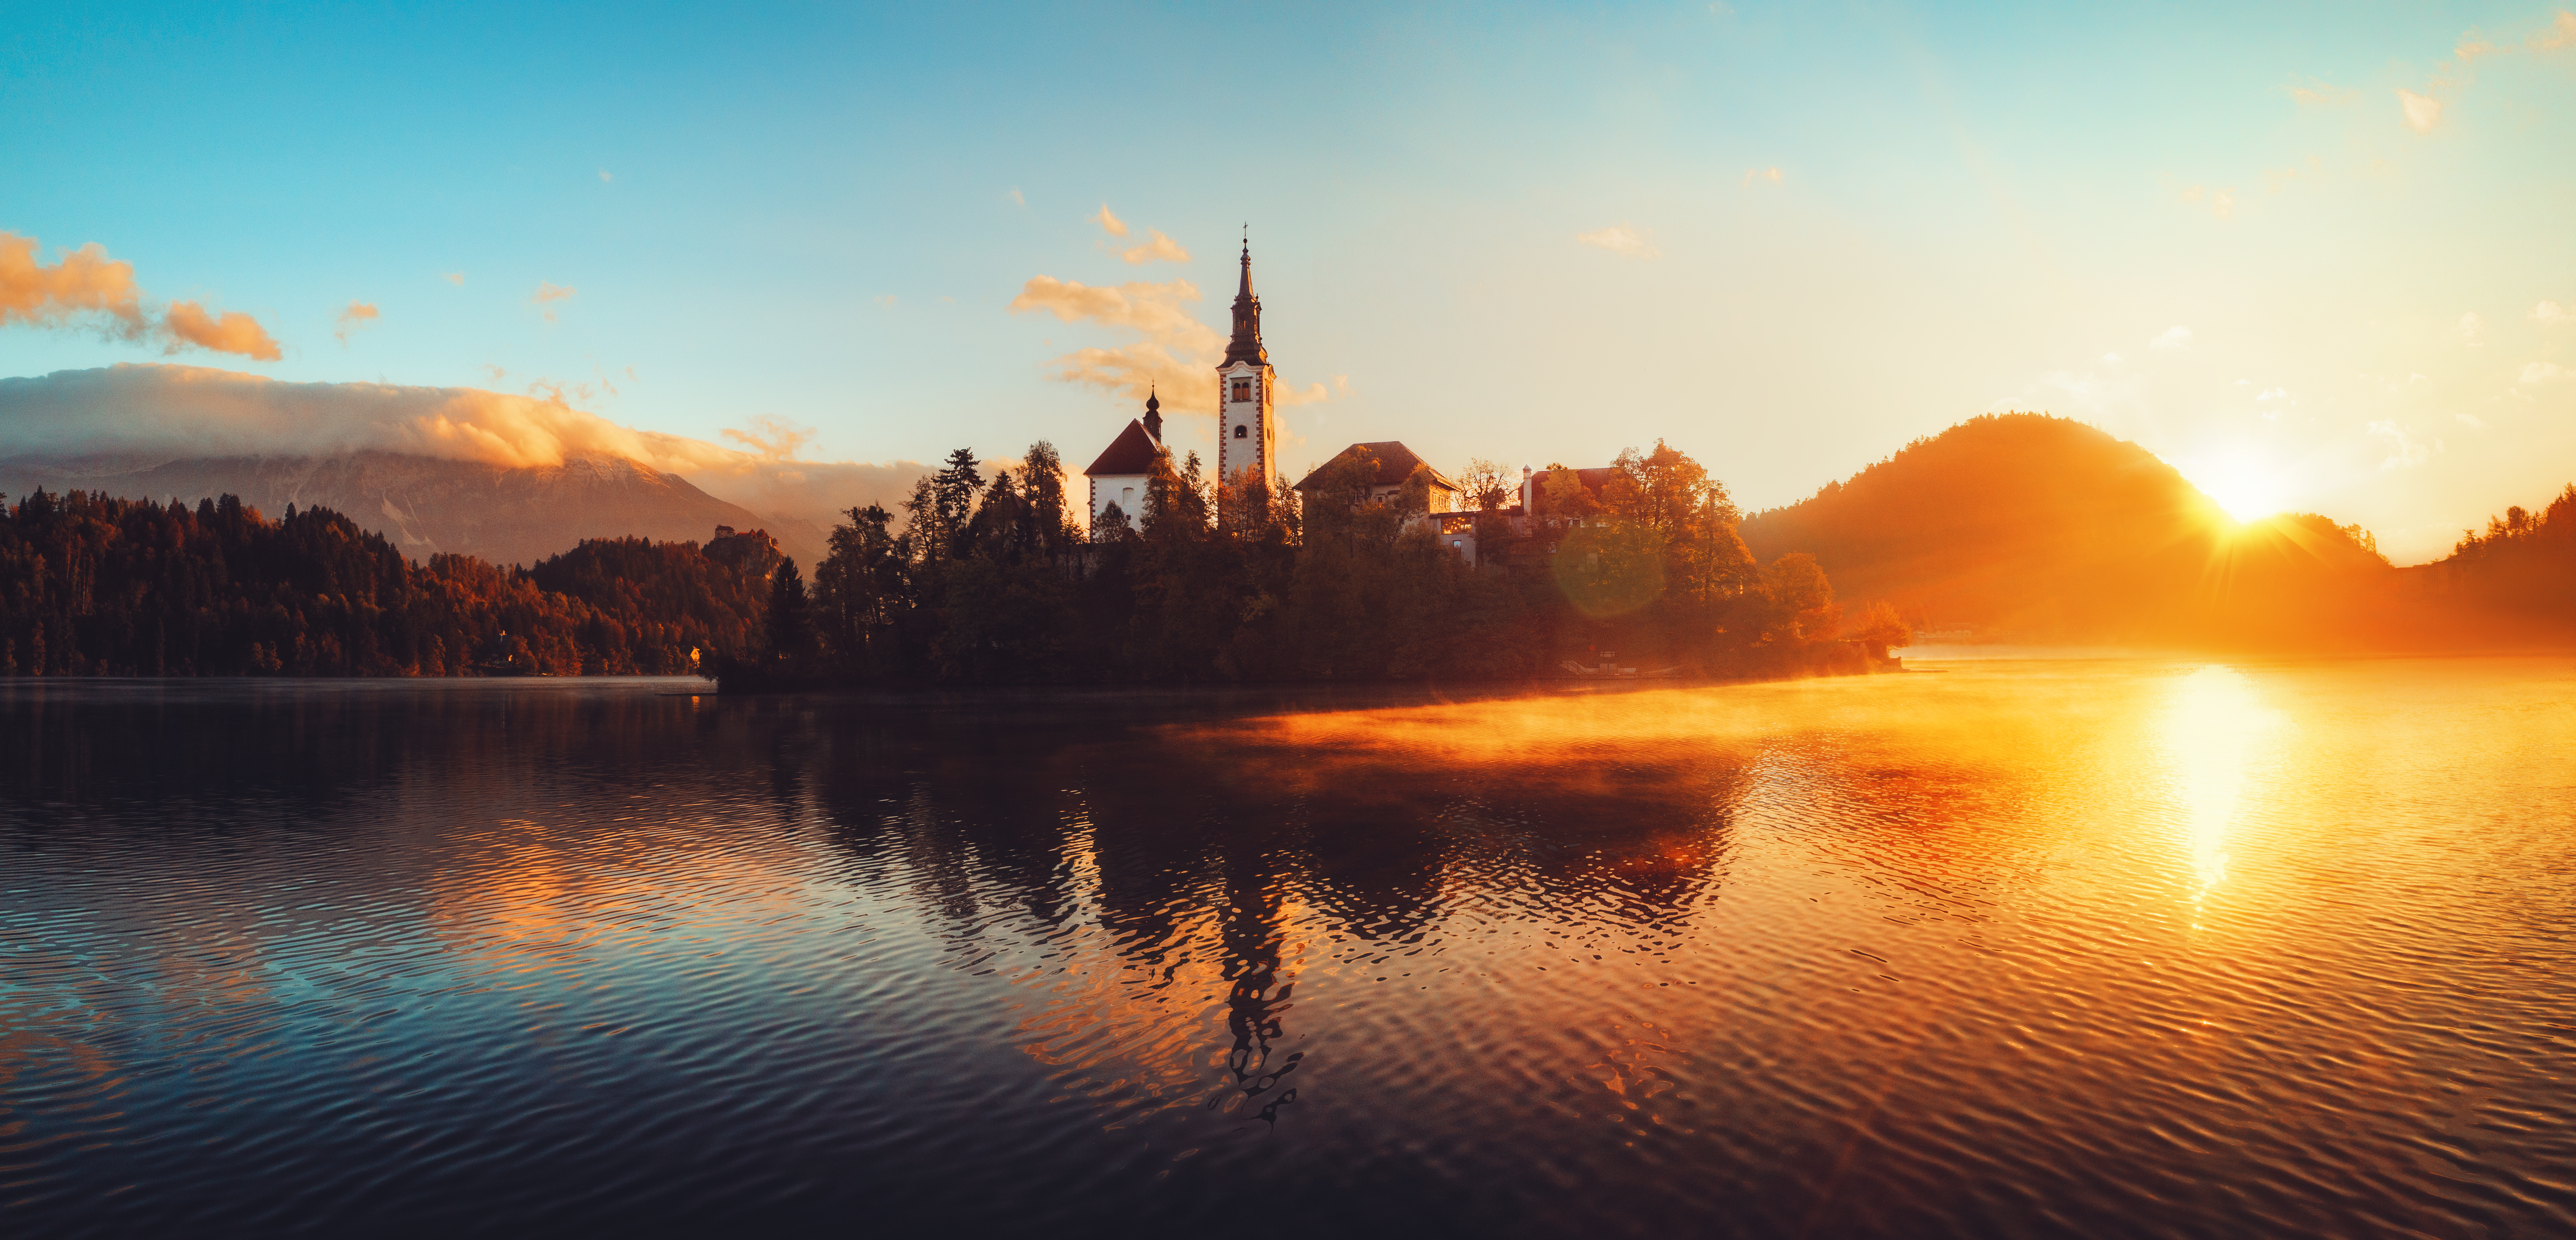 Aerial view of church of Assumption in Lake Bled, Slovenia.